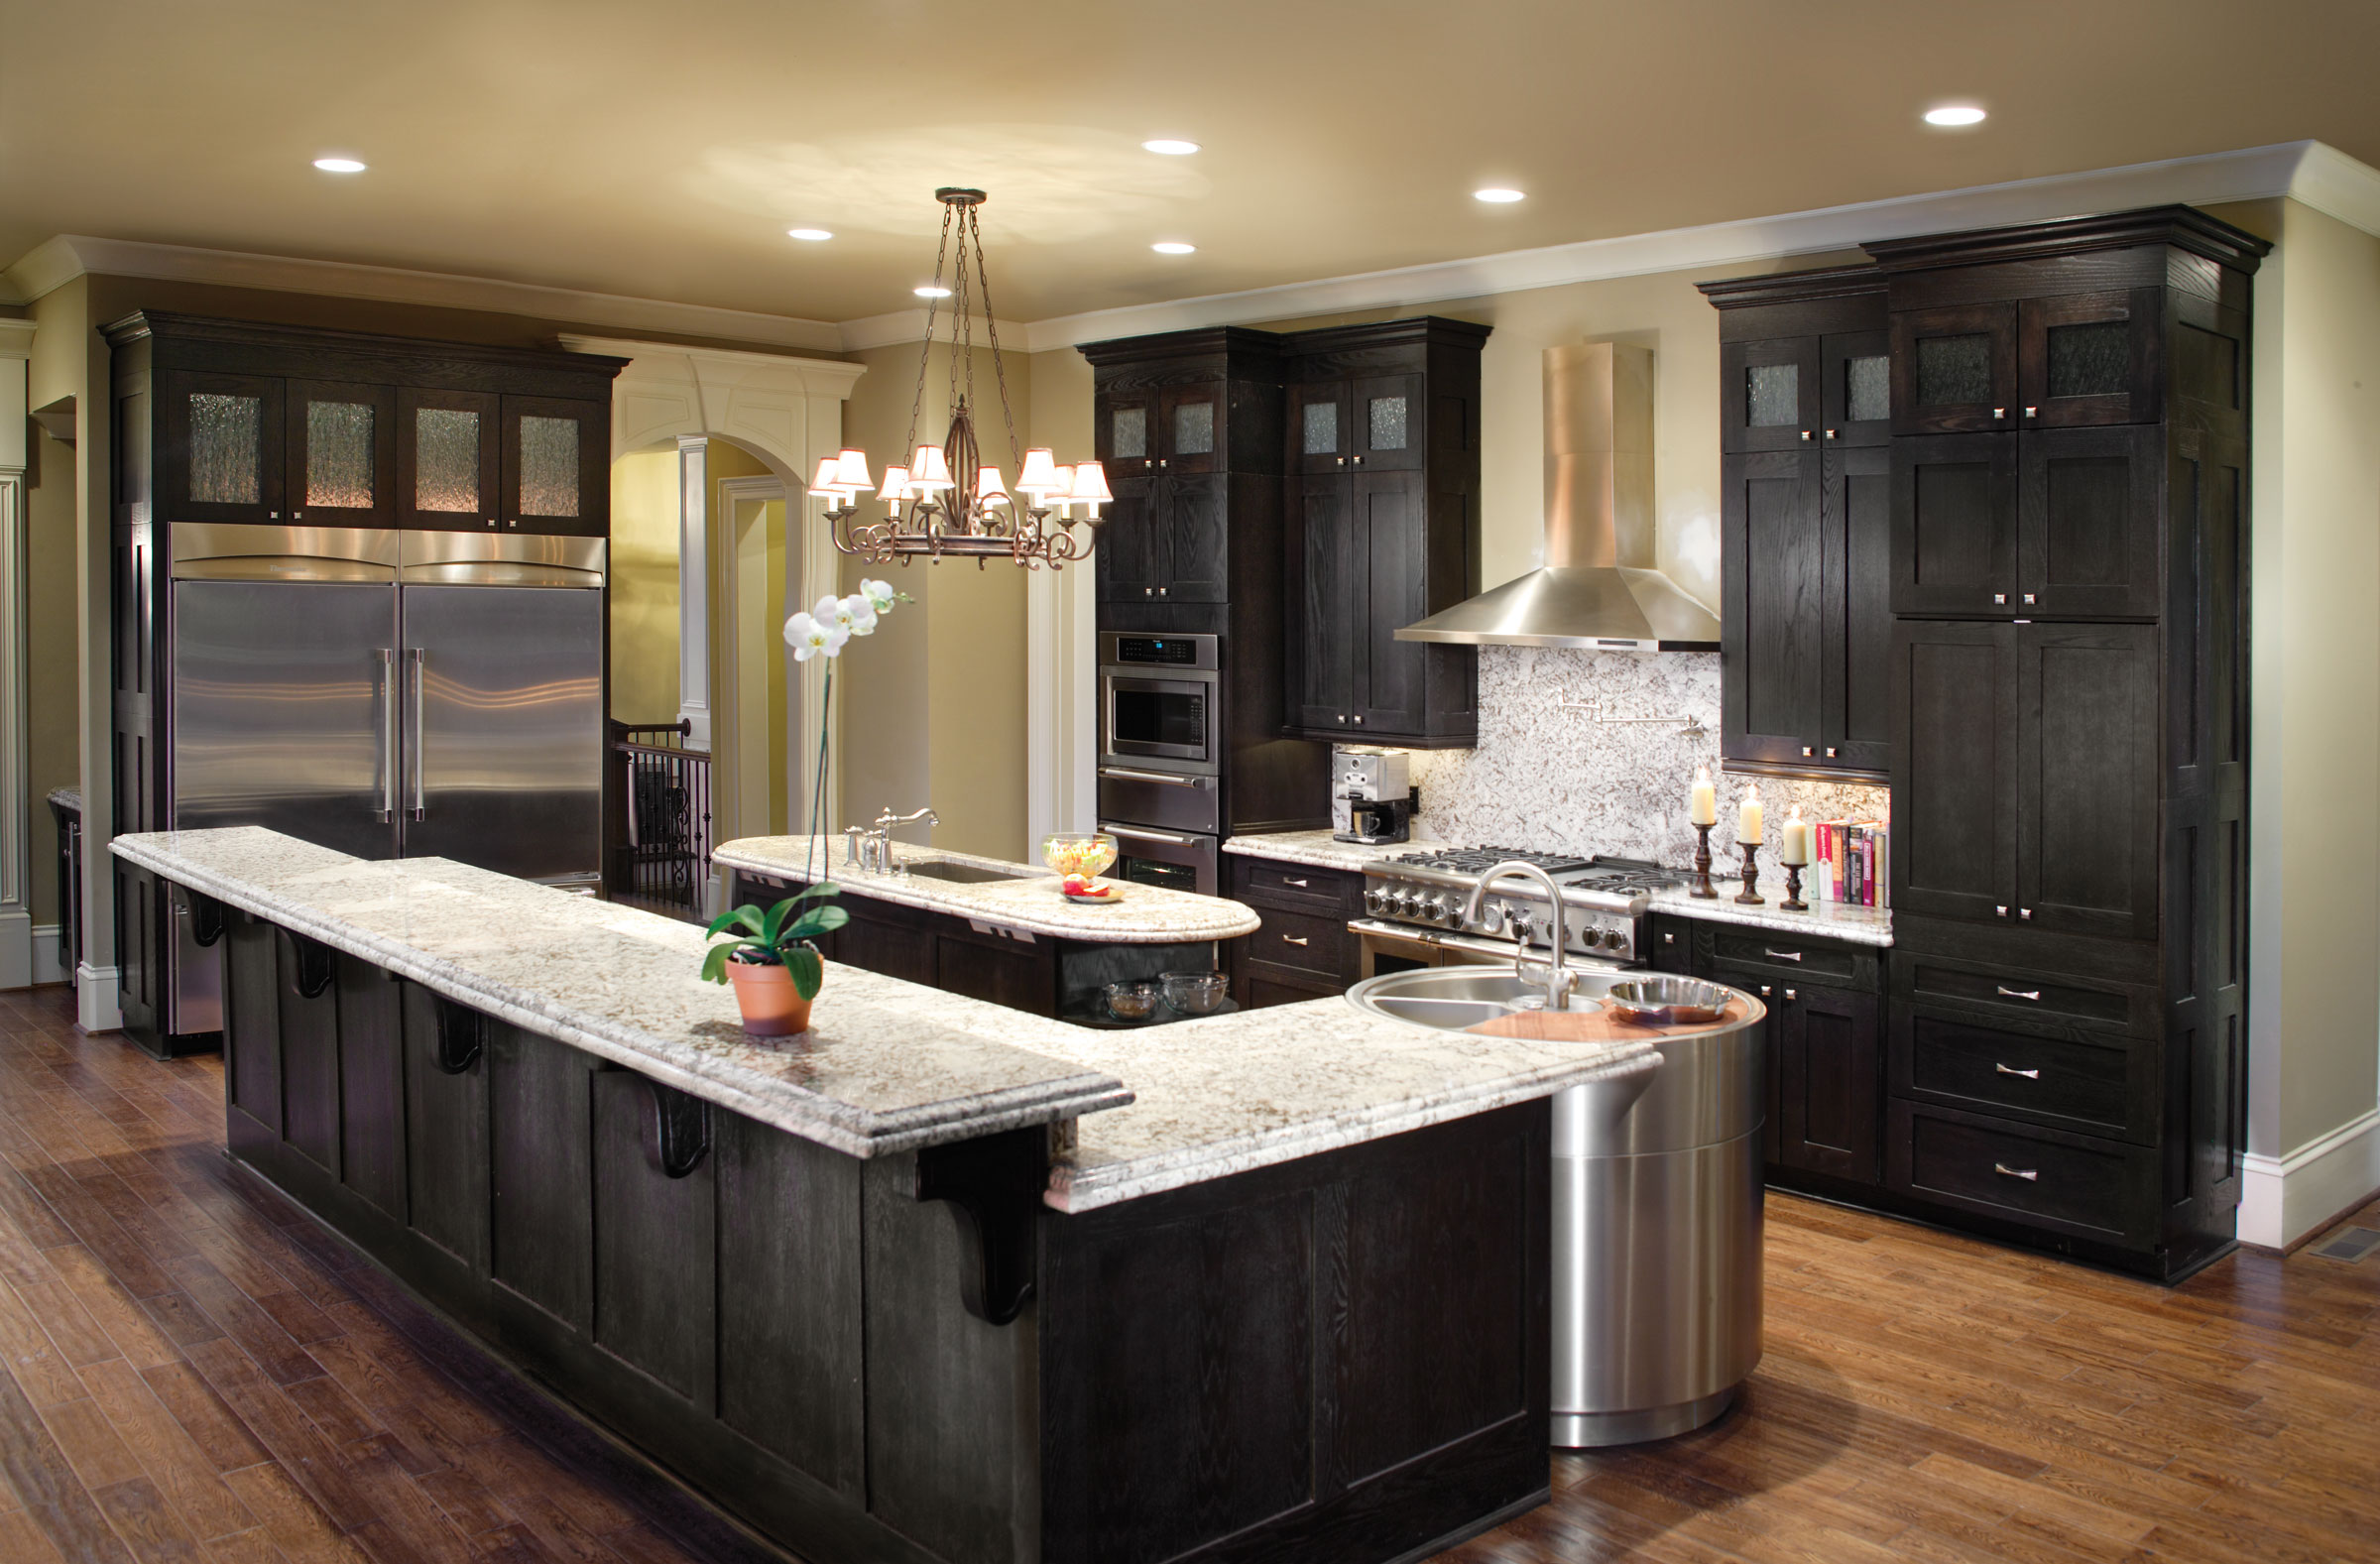 cabinetsbydesignaz pictures of kitchen cabinets Custom Kitchen Bathroom Cabinets Company in Phoenix AZ Cabinet Maker